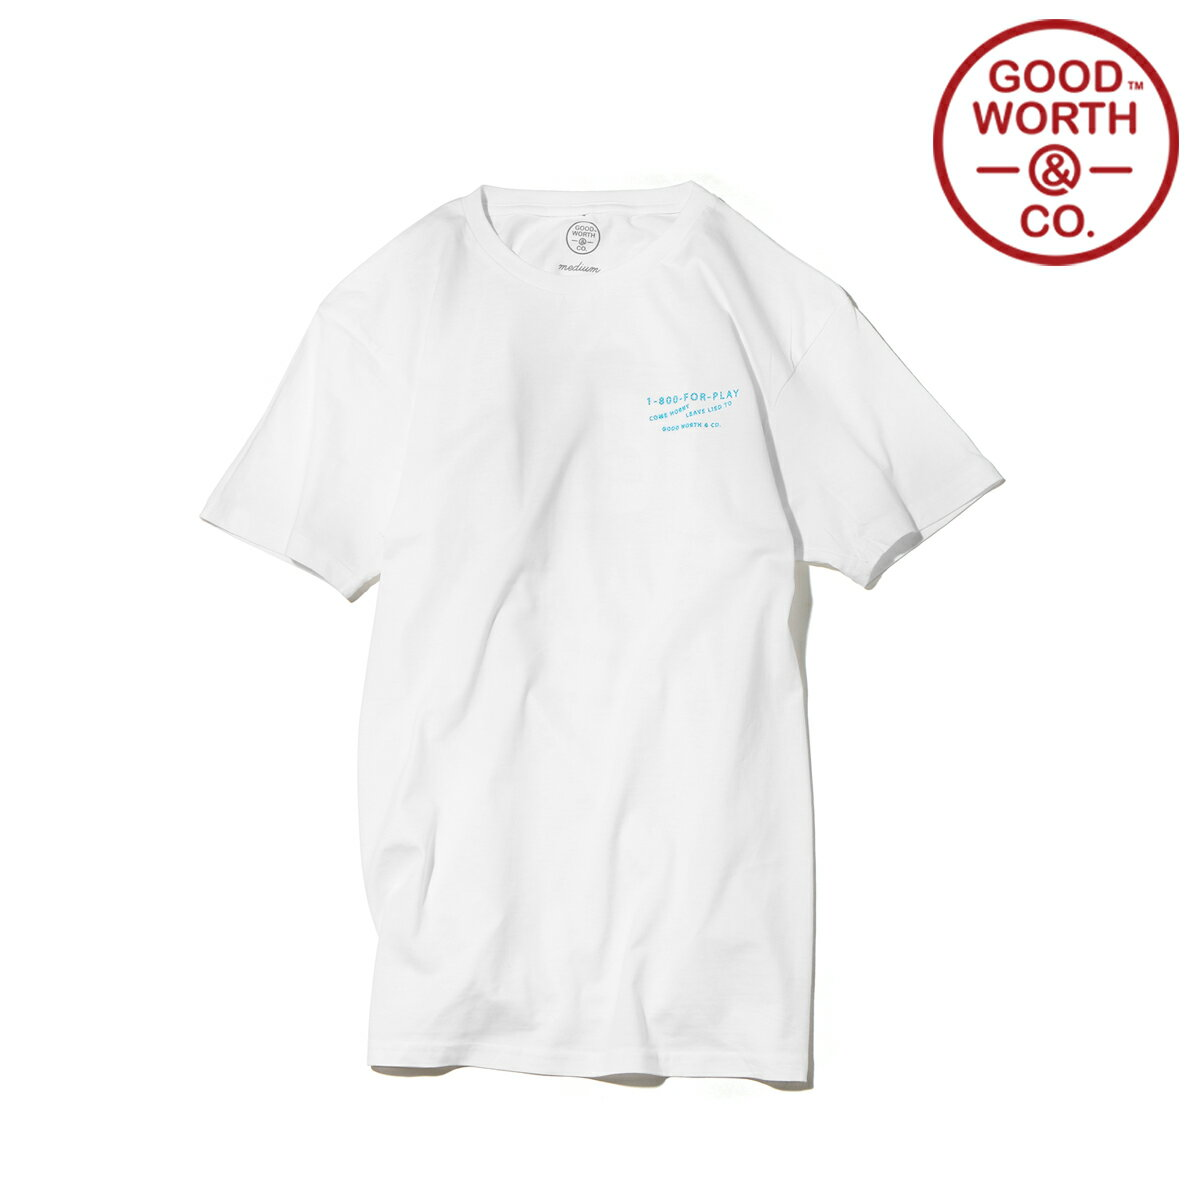 GOOD WORTH & CO. PEEP SHOW T-SHIRT (2色展開) 【メンズサイズ】【17SP-I】【50】【sale0123】